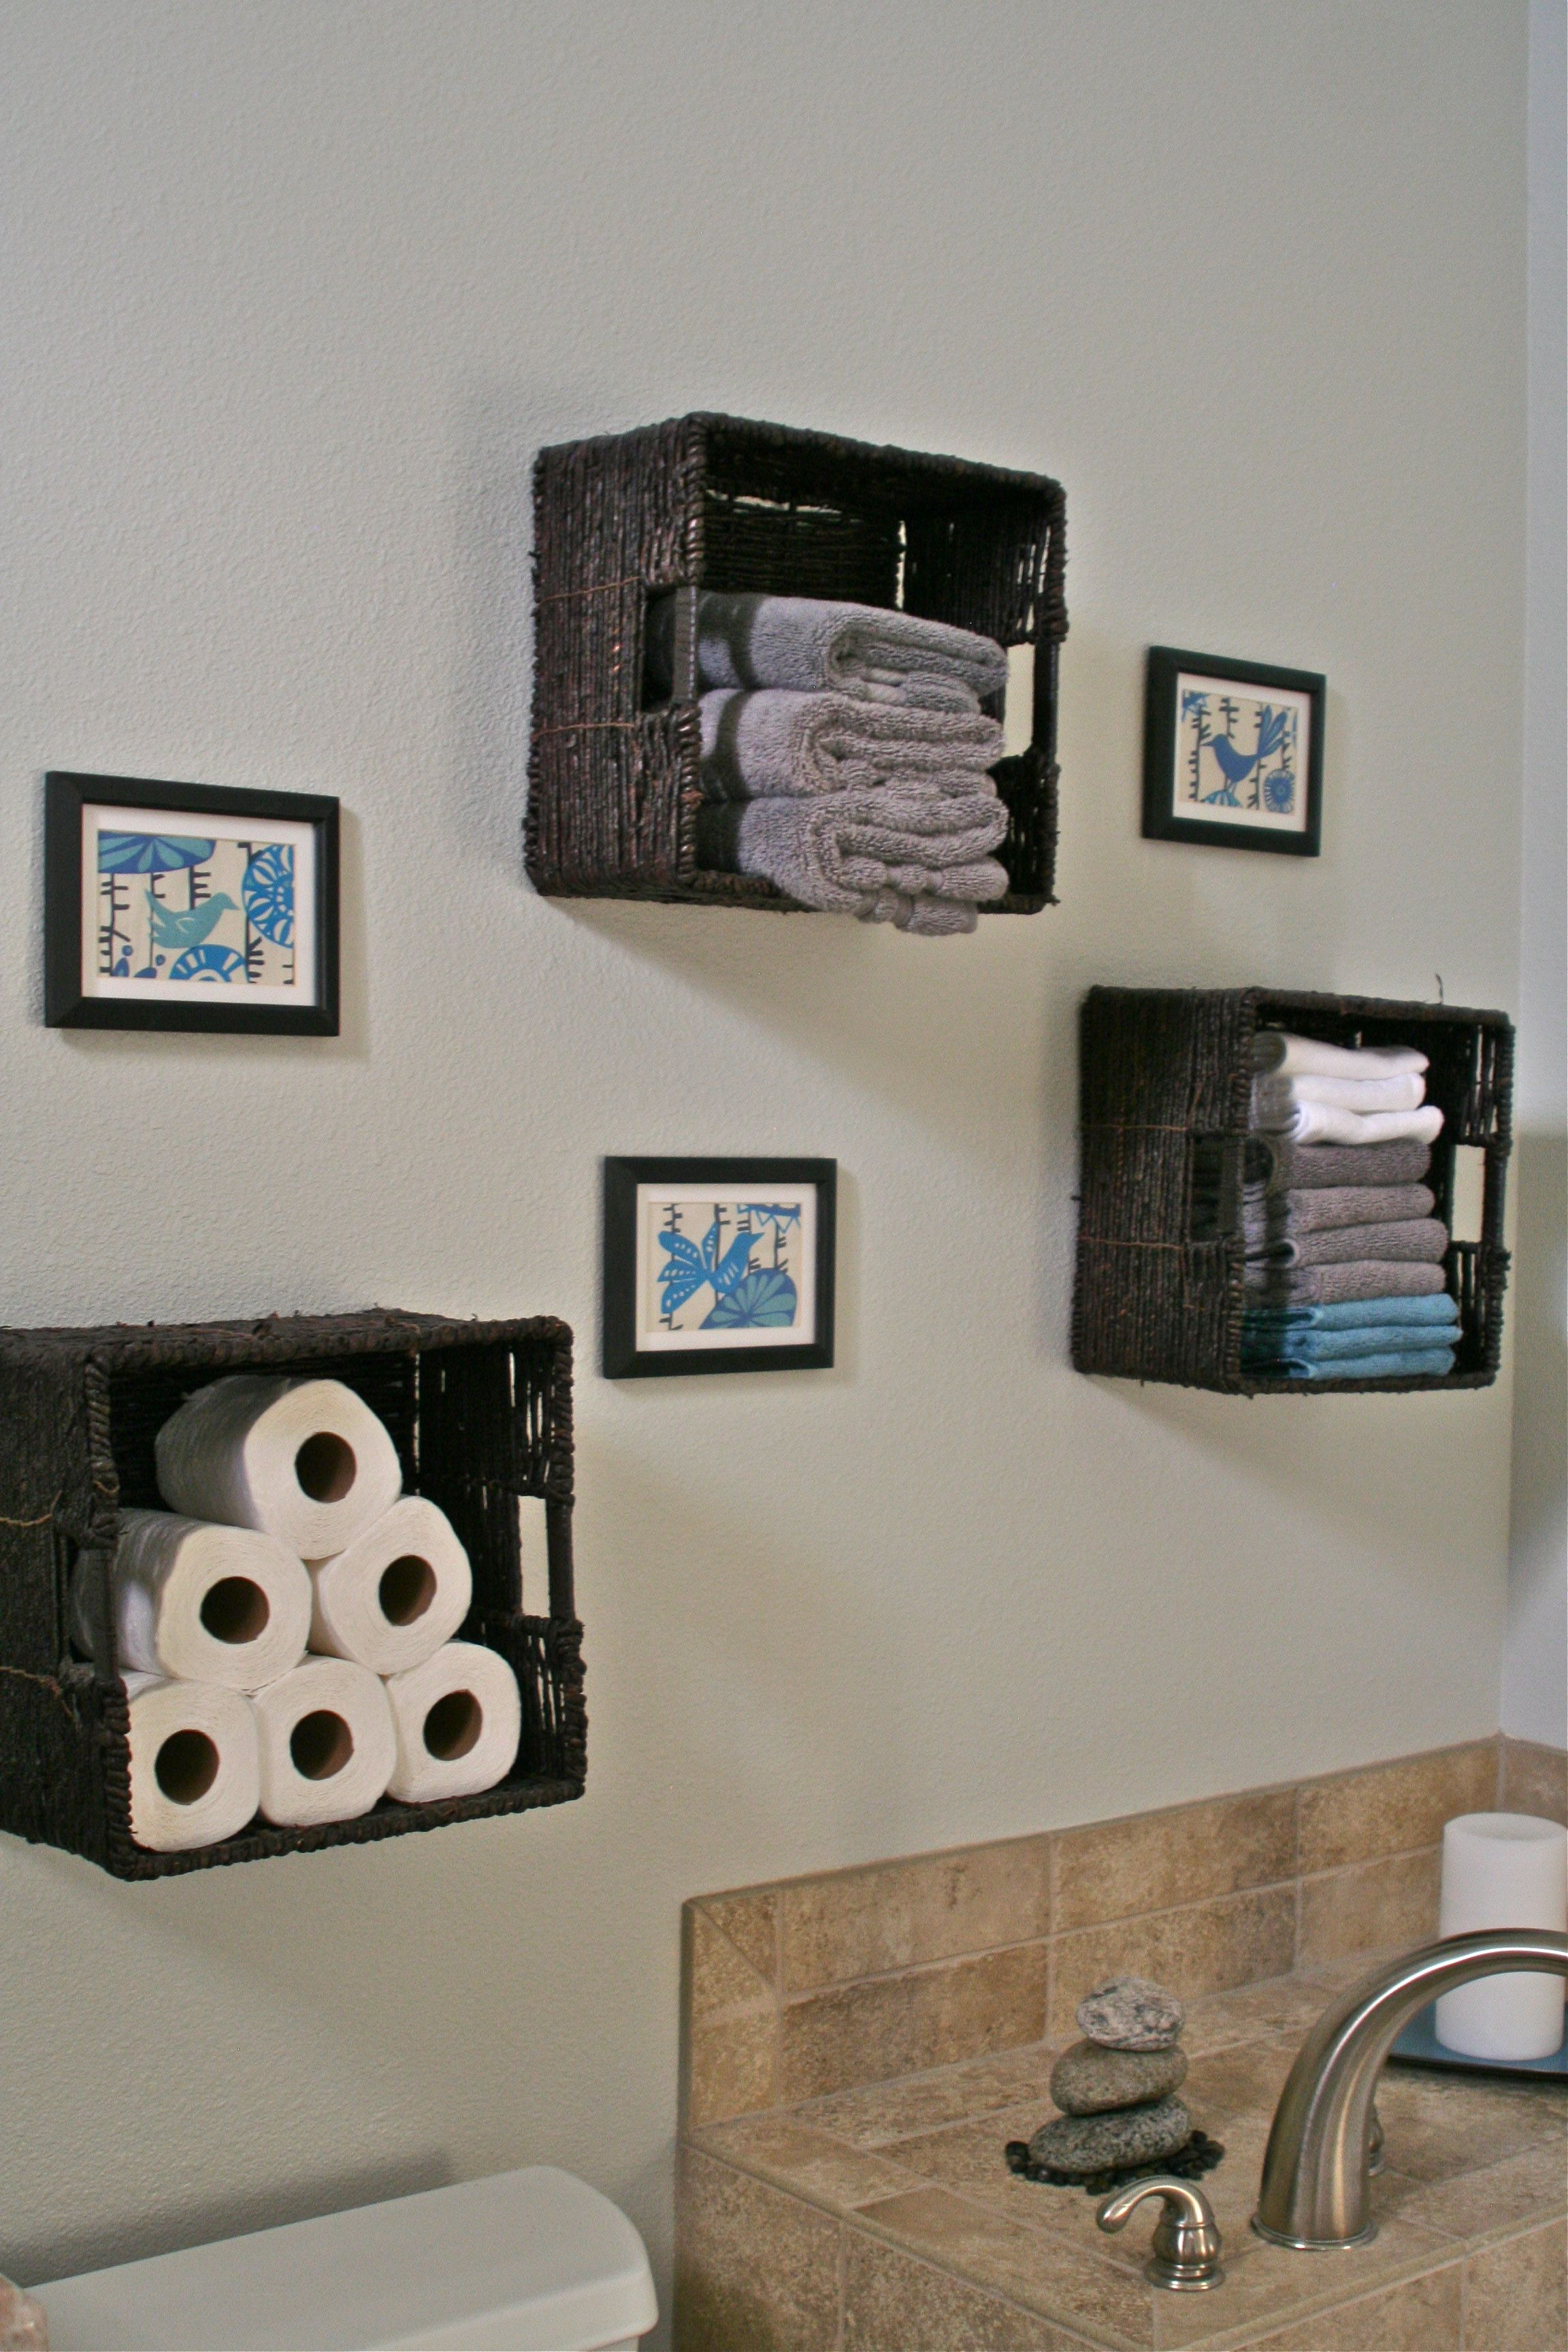 Bathroom Storage Baskets For Towels Toilet Paper Etc Love intended for dimensions 2304 X 3456